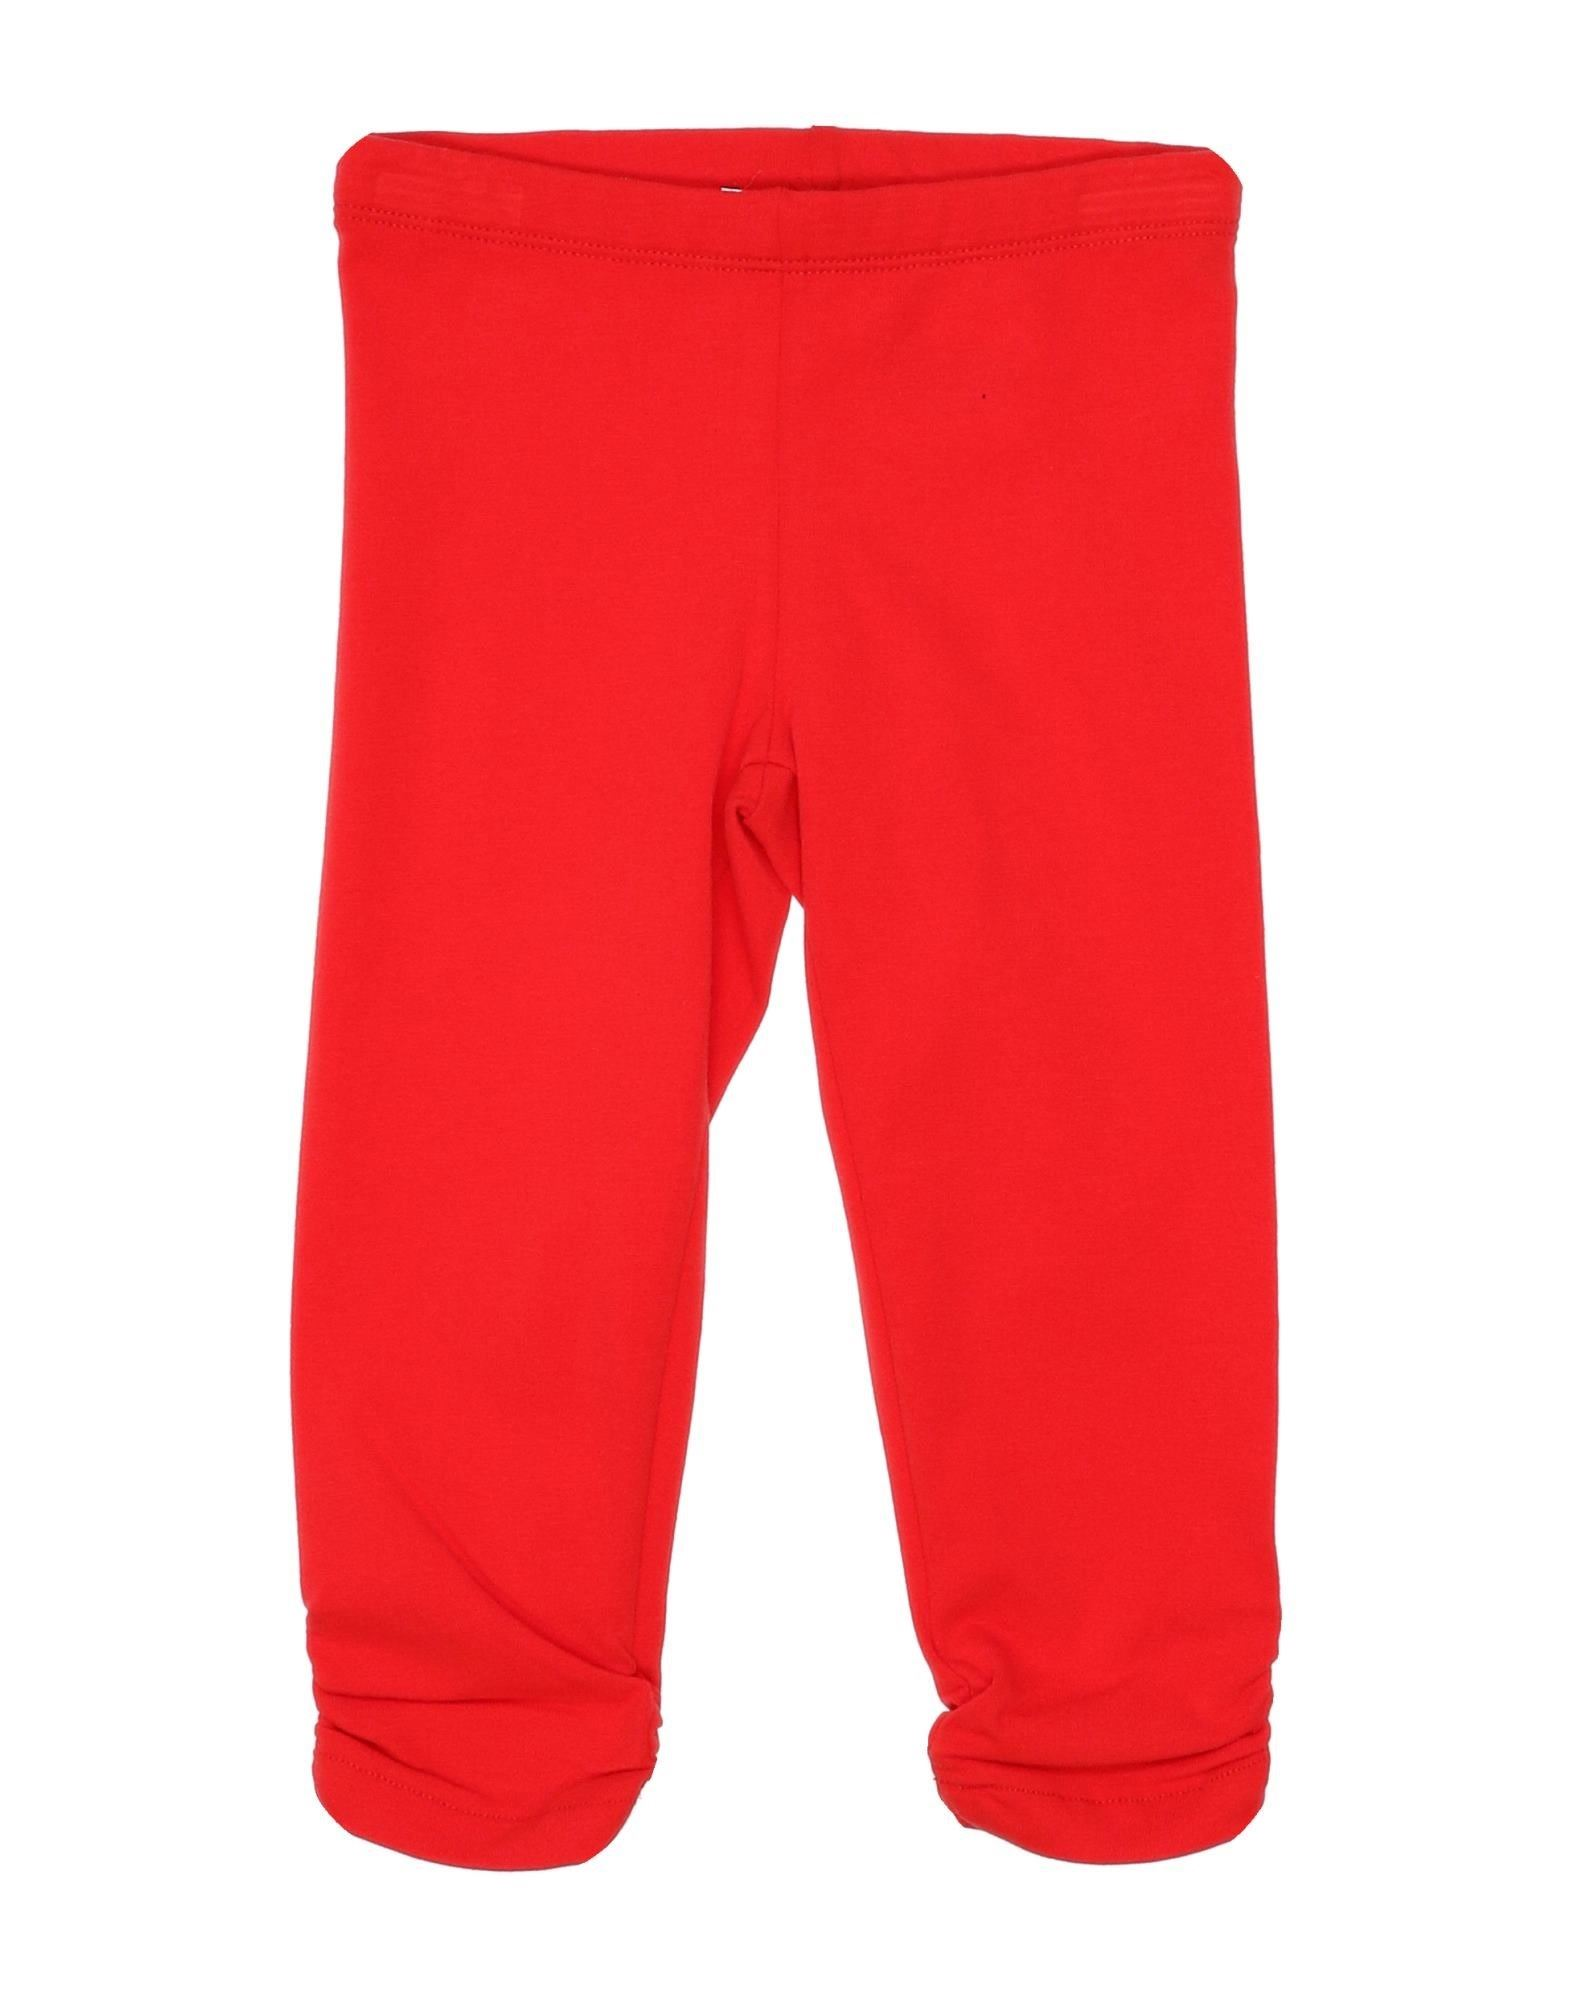 ELSY Leggings Kinder Rot von ELSY